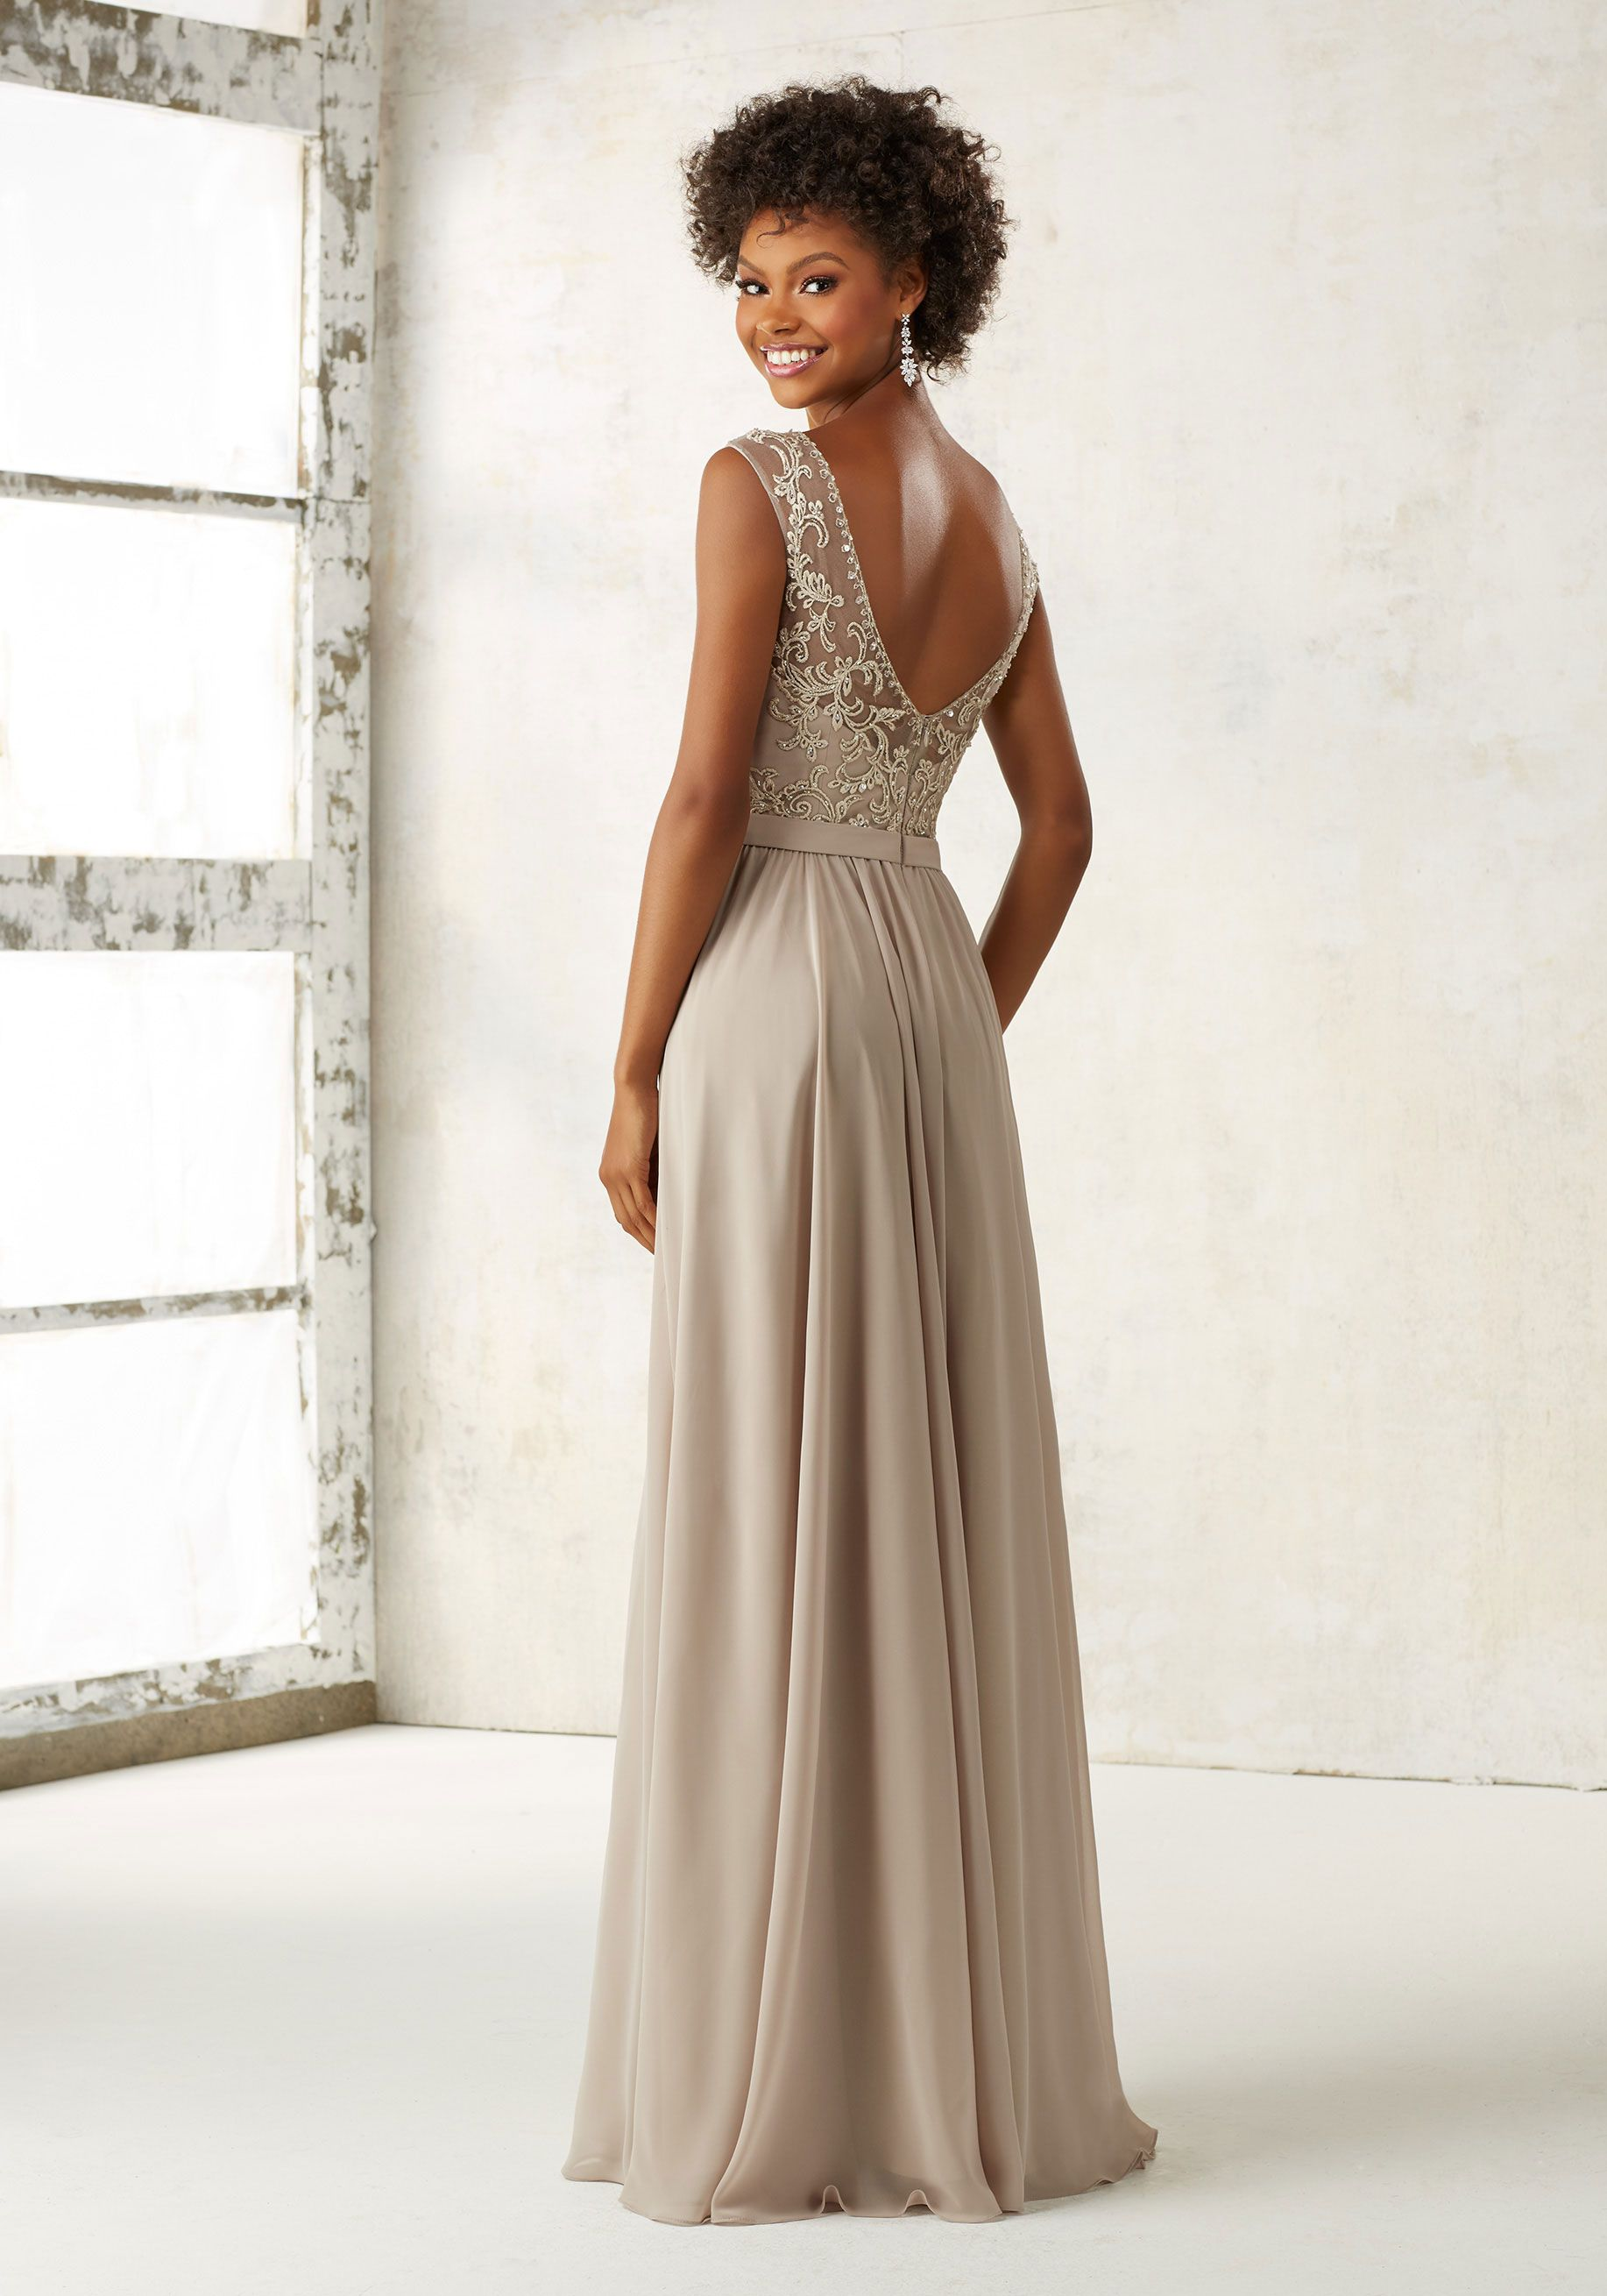 Morilee by madeline gardner bridesmaids style 21522 ornate morilee by madeline gardner bridesmaids style 21522 ornate embroidery and beading accentents the illusion bodice ombrellifo Gallery